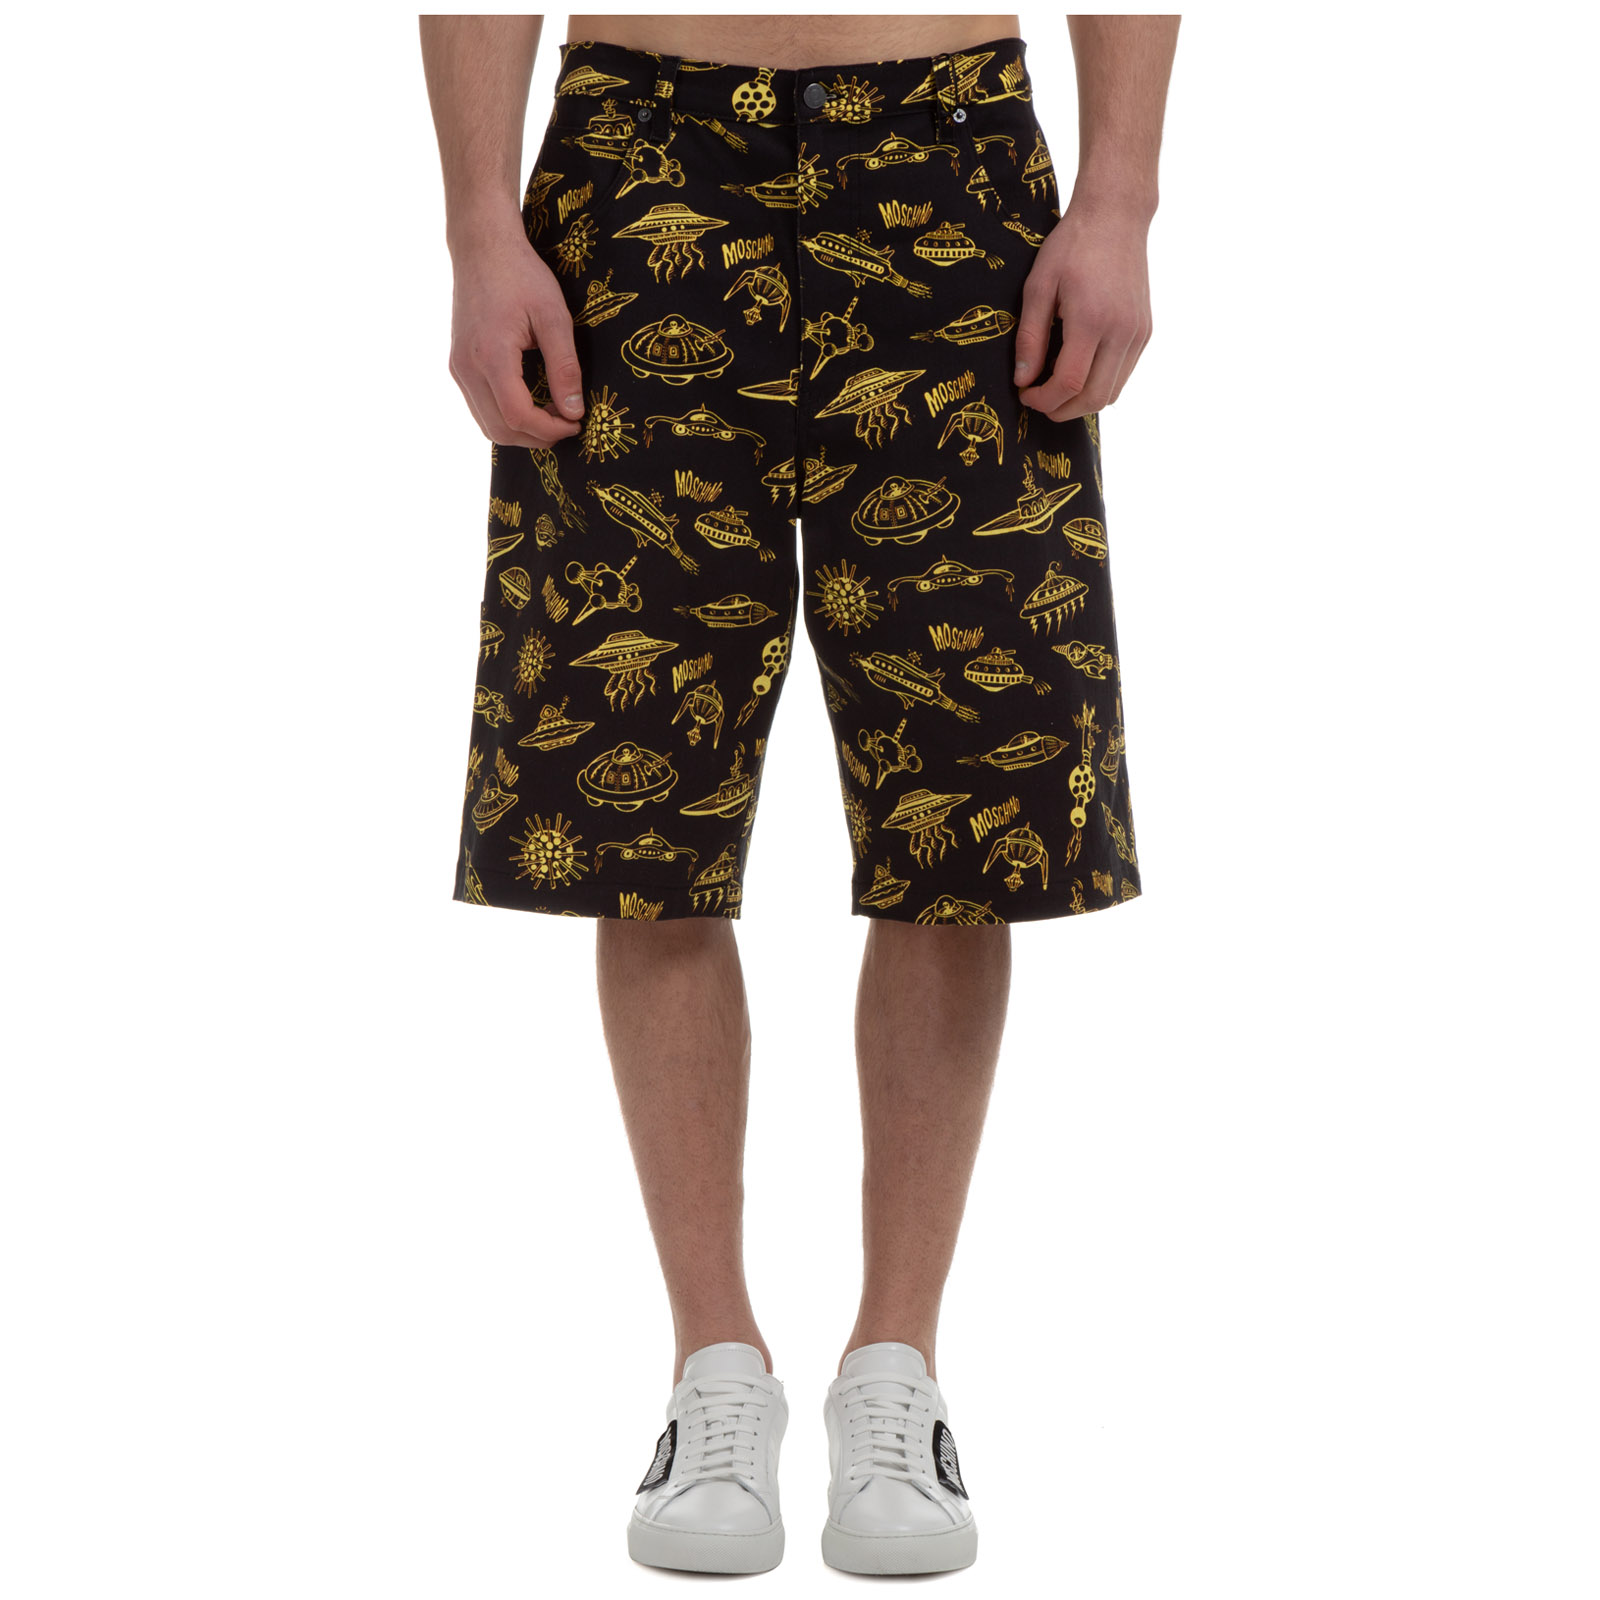 Moschino MEN'S SHORTS BERMUDA SPACESHIP